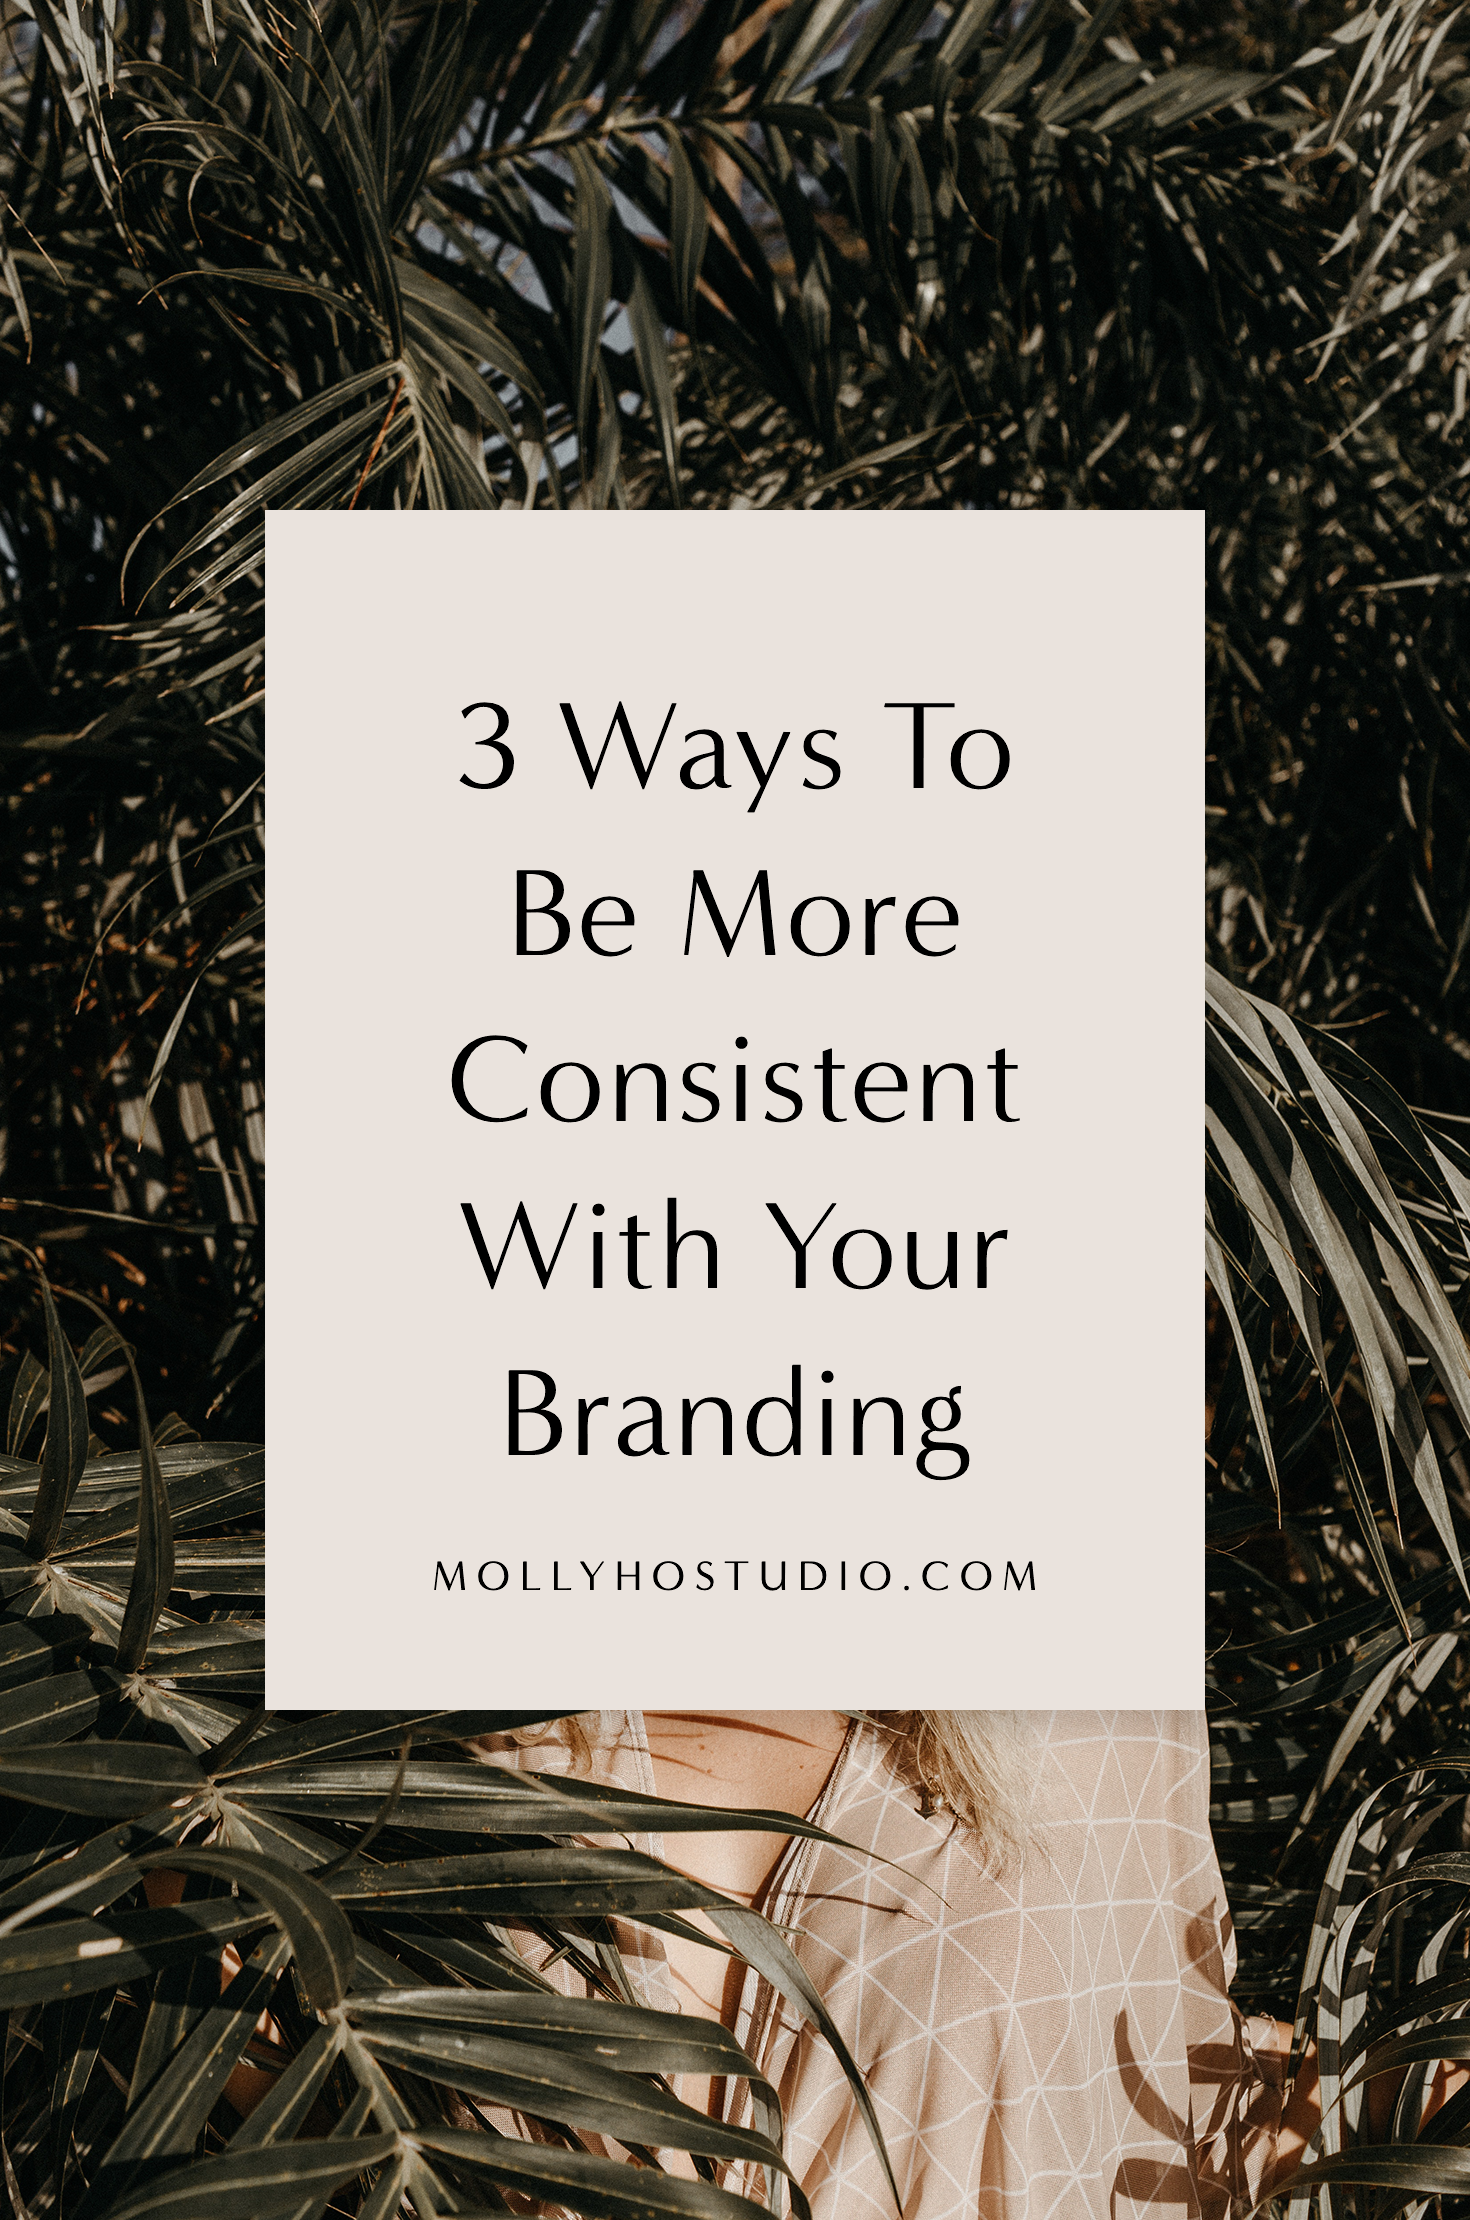 3 Simple Ways To Be More Consistent With Your Branding   How To Be More Consistent With Your Branding and Business   How To Brand Your Photography Business   Branding and Business Tips For Photographers   Why Brand Consistency Matters   What Is Branding   How To Create Brand Consistency   How To Simplify Your Business and Brand   Molly Ho Studio